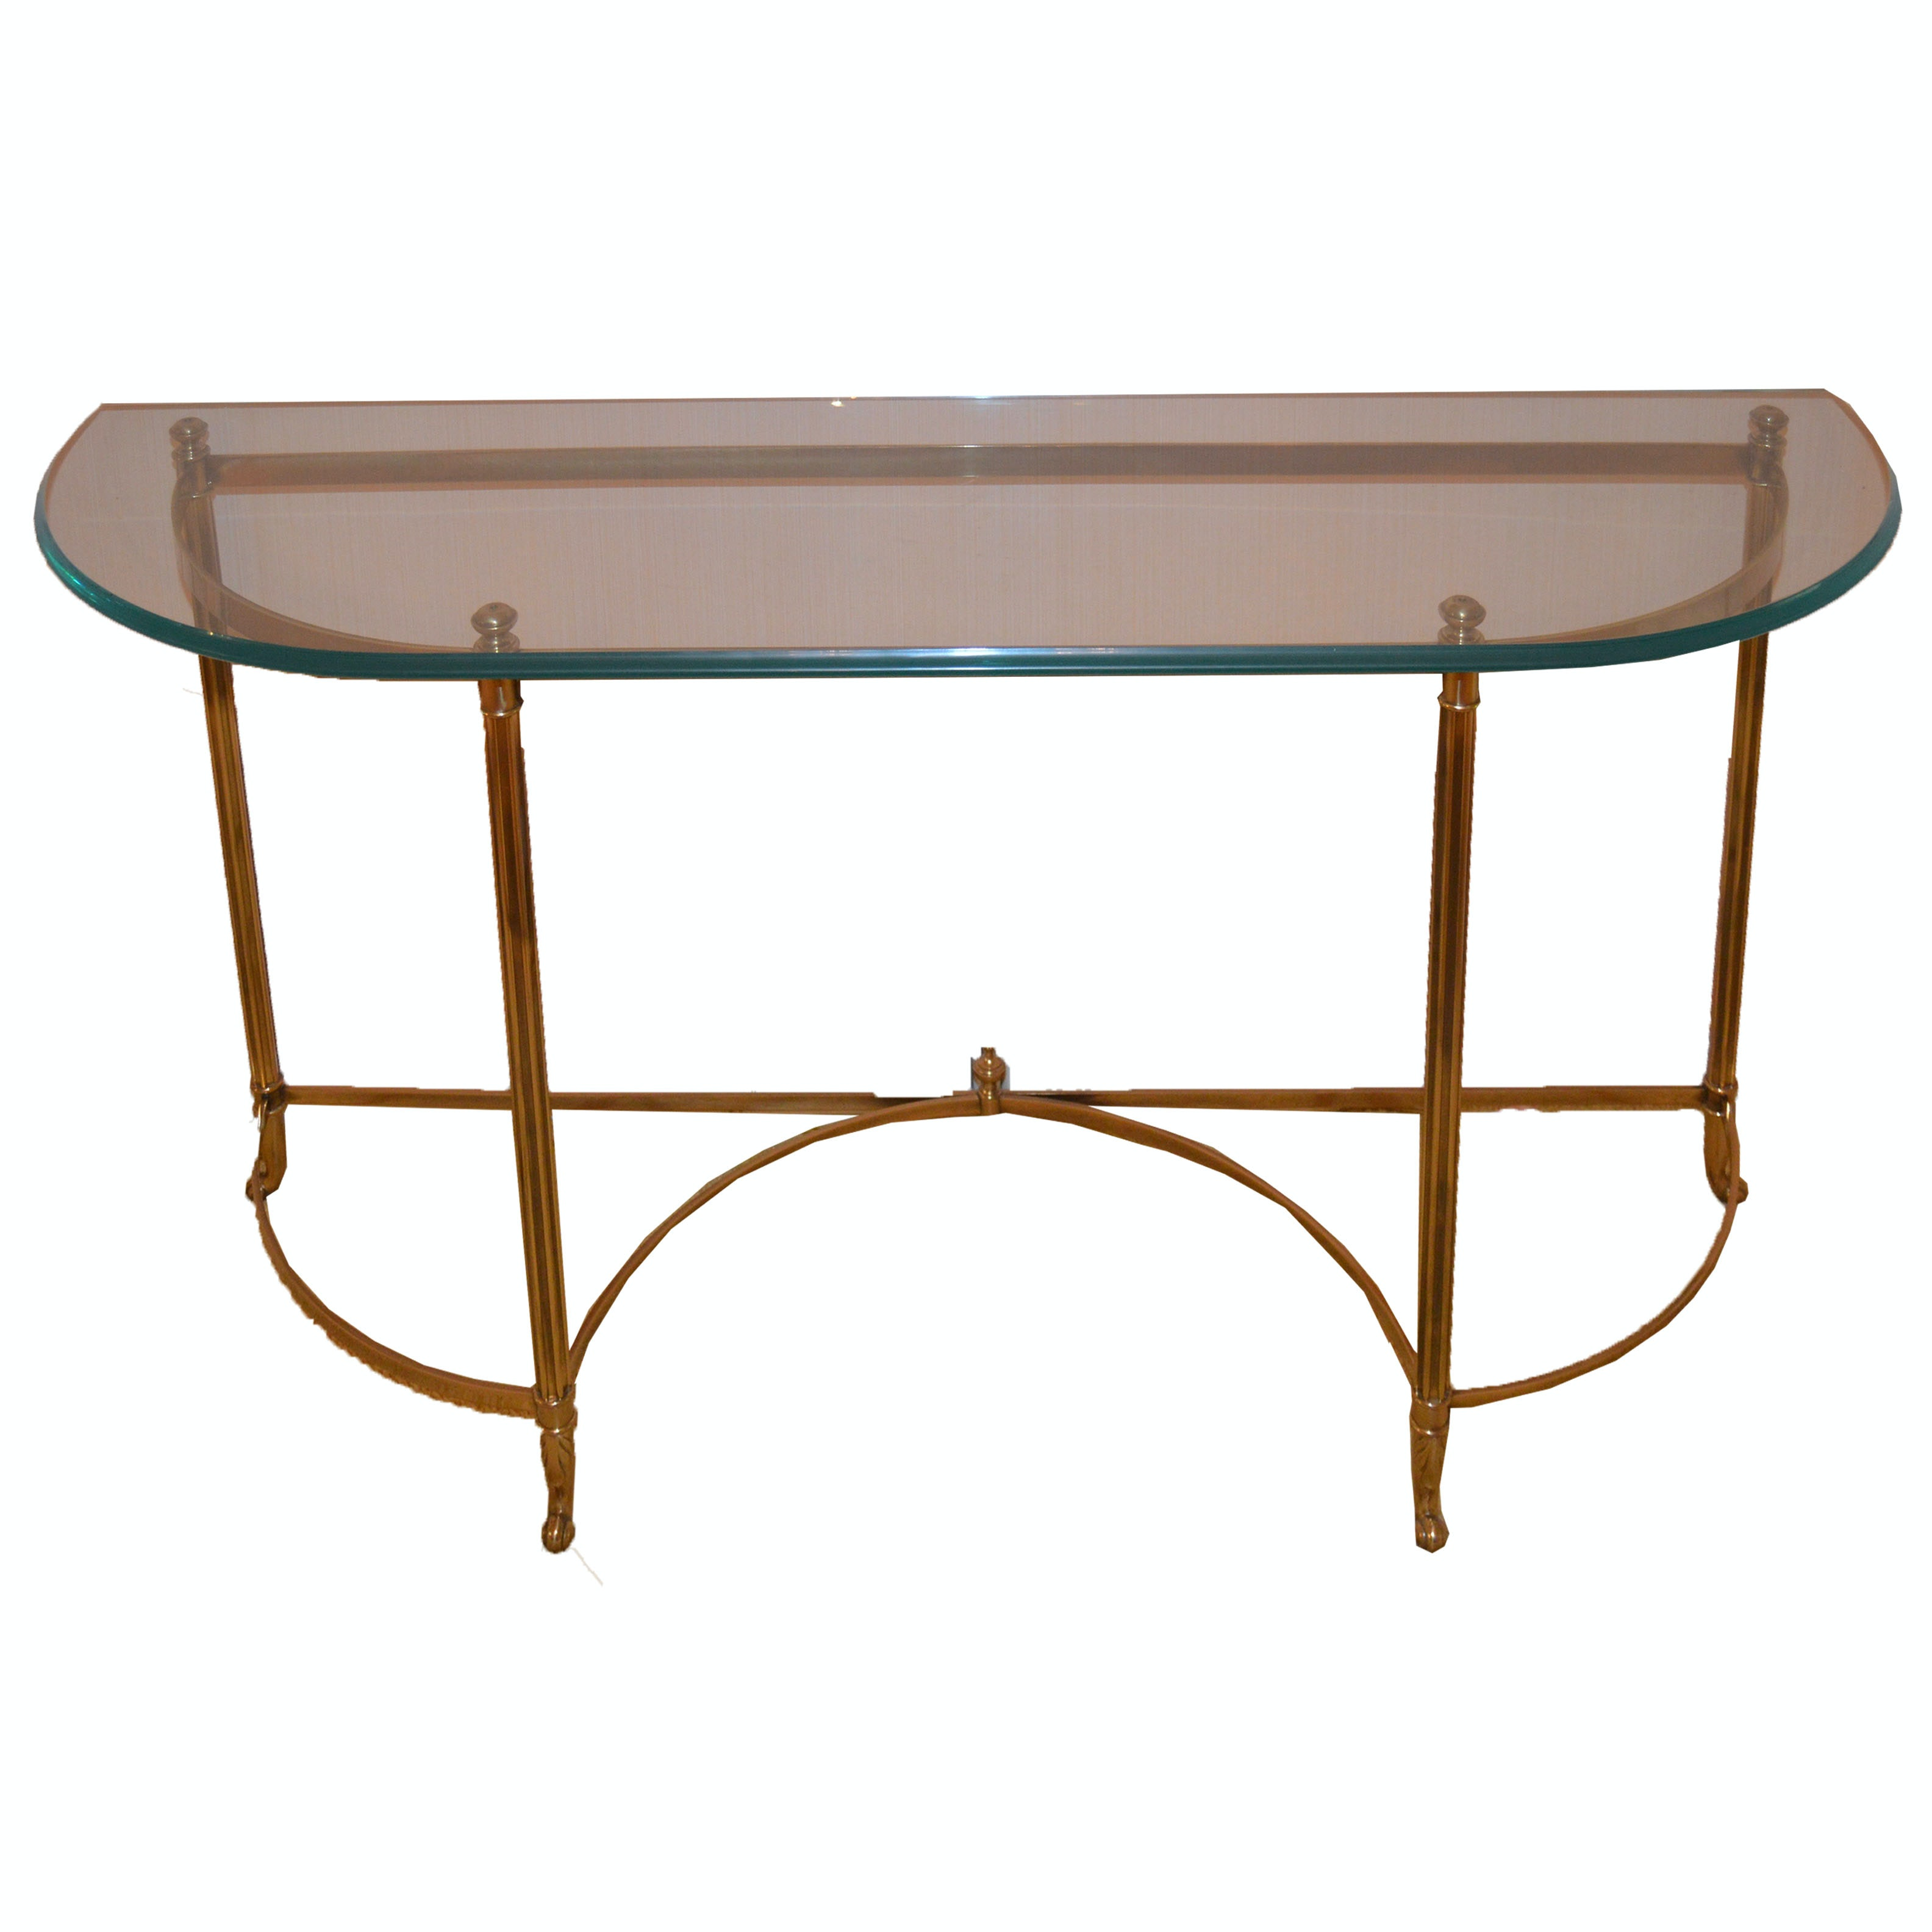 French Inspired Glass and Antique Brass Console Table